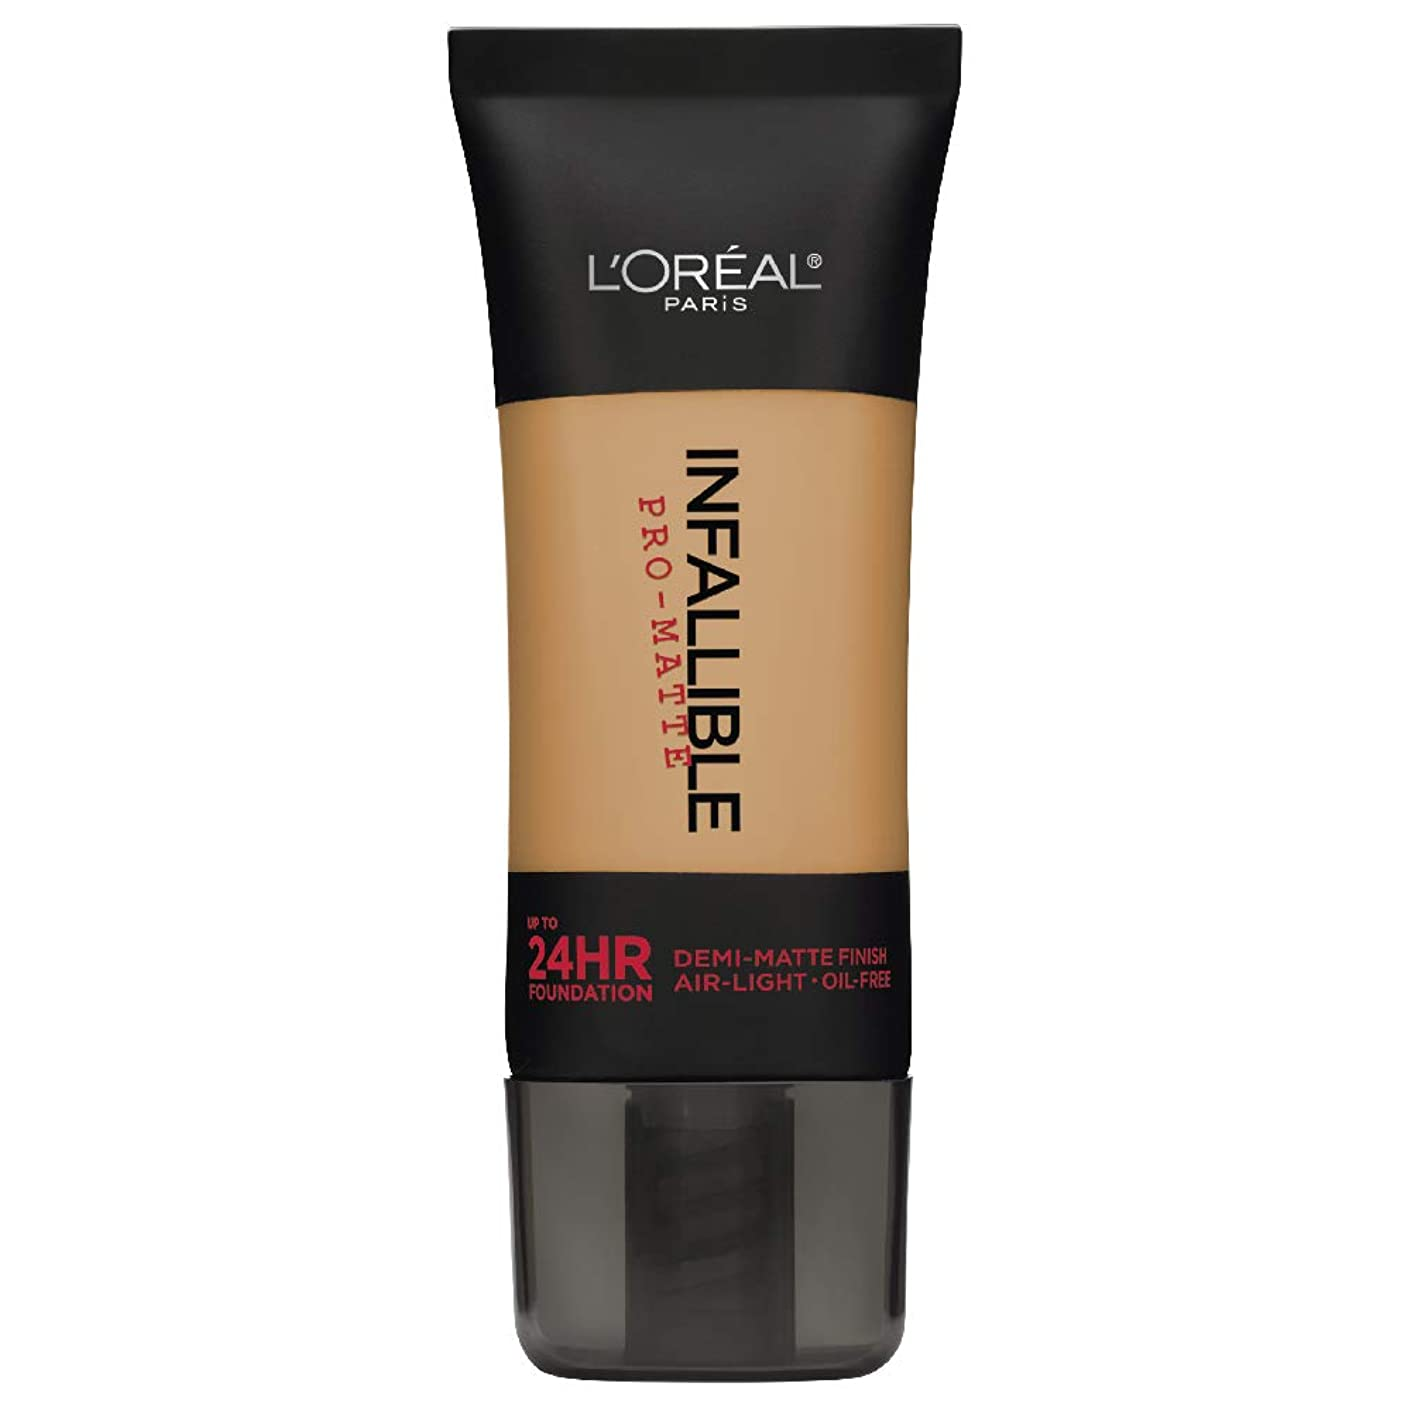 振るヘッドレス予防接種するL'Oreal Paris Infallible Pro-Matte Foundation Makeup, 107 Fresh Beige, 1 fl. oz[並行輸入品]